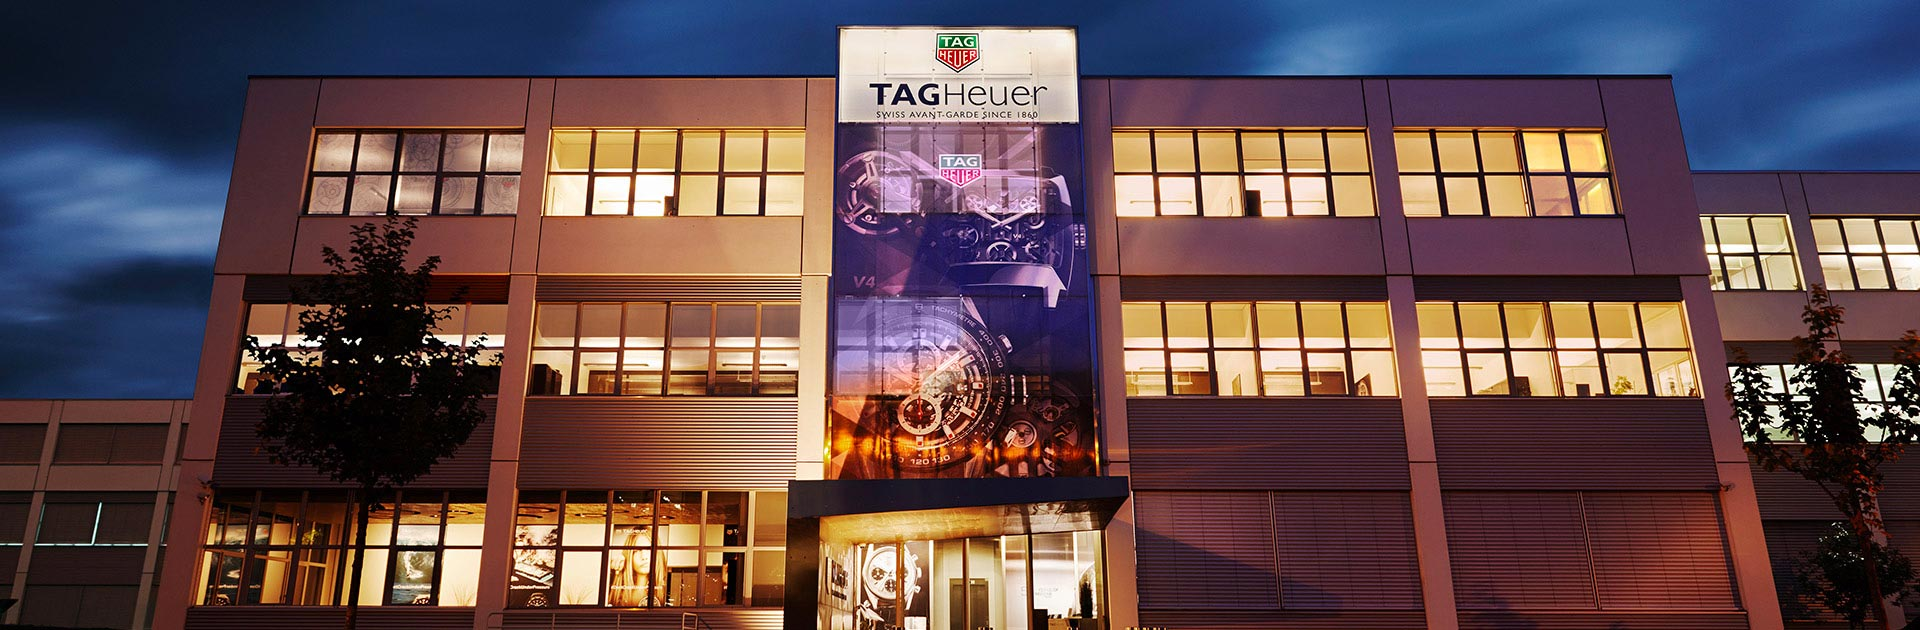 tag heuer la chaux de fonds headquarters